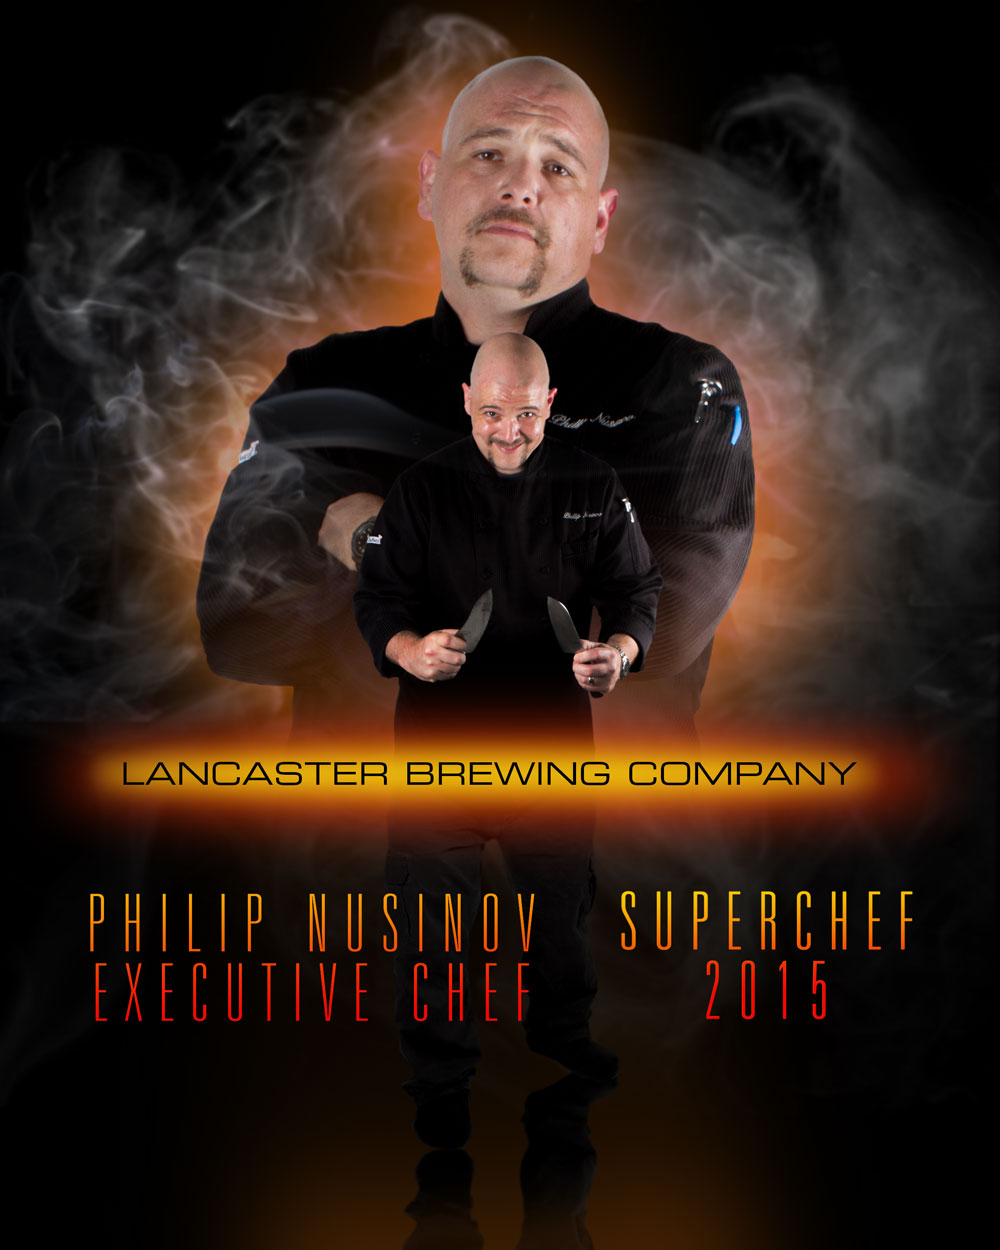 Philip Nusinov, Executive Chef, Lancaster Brewing Company